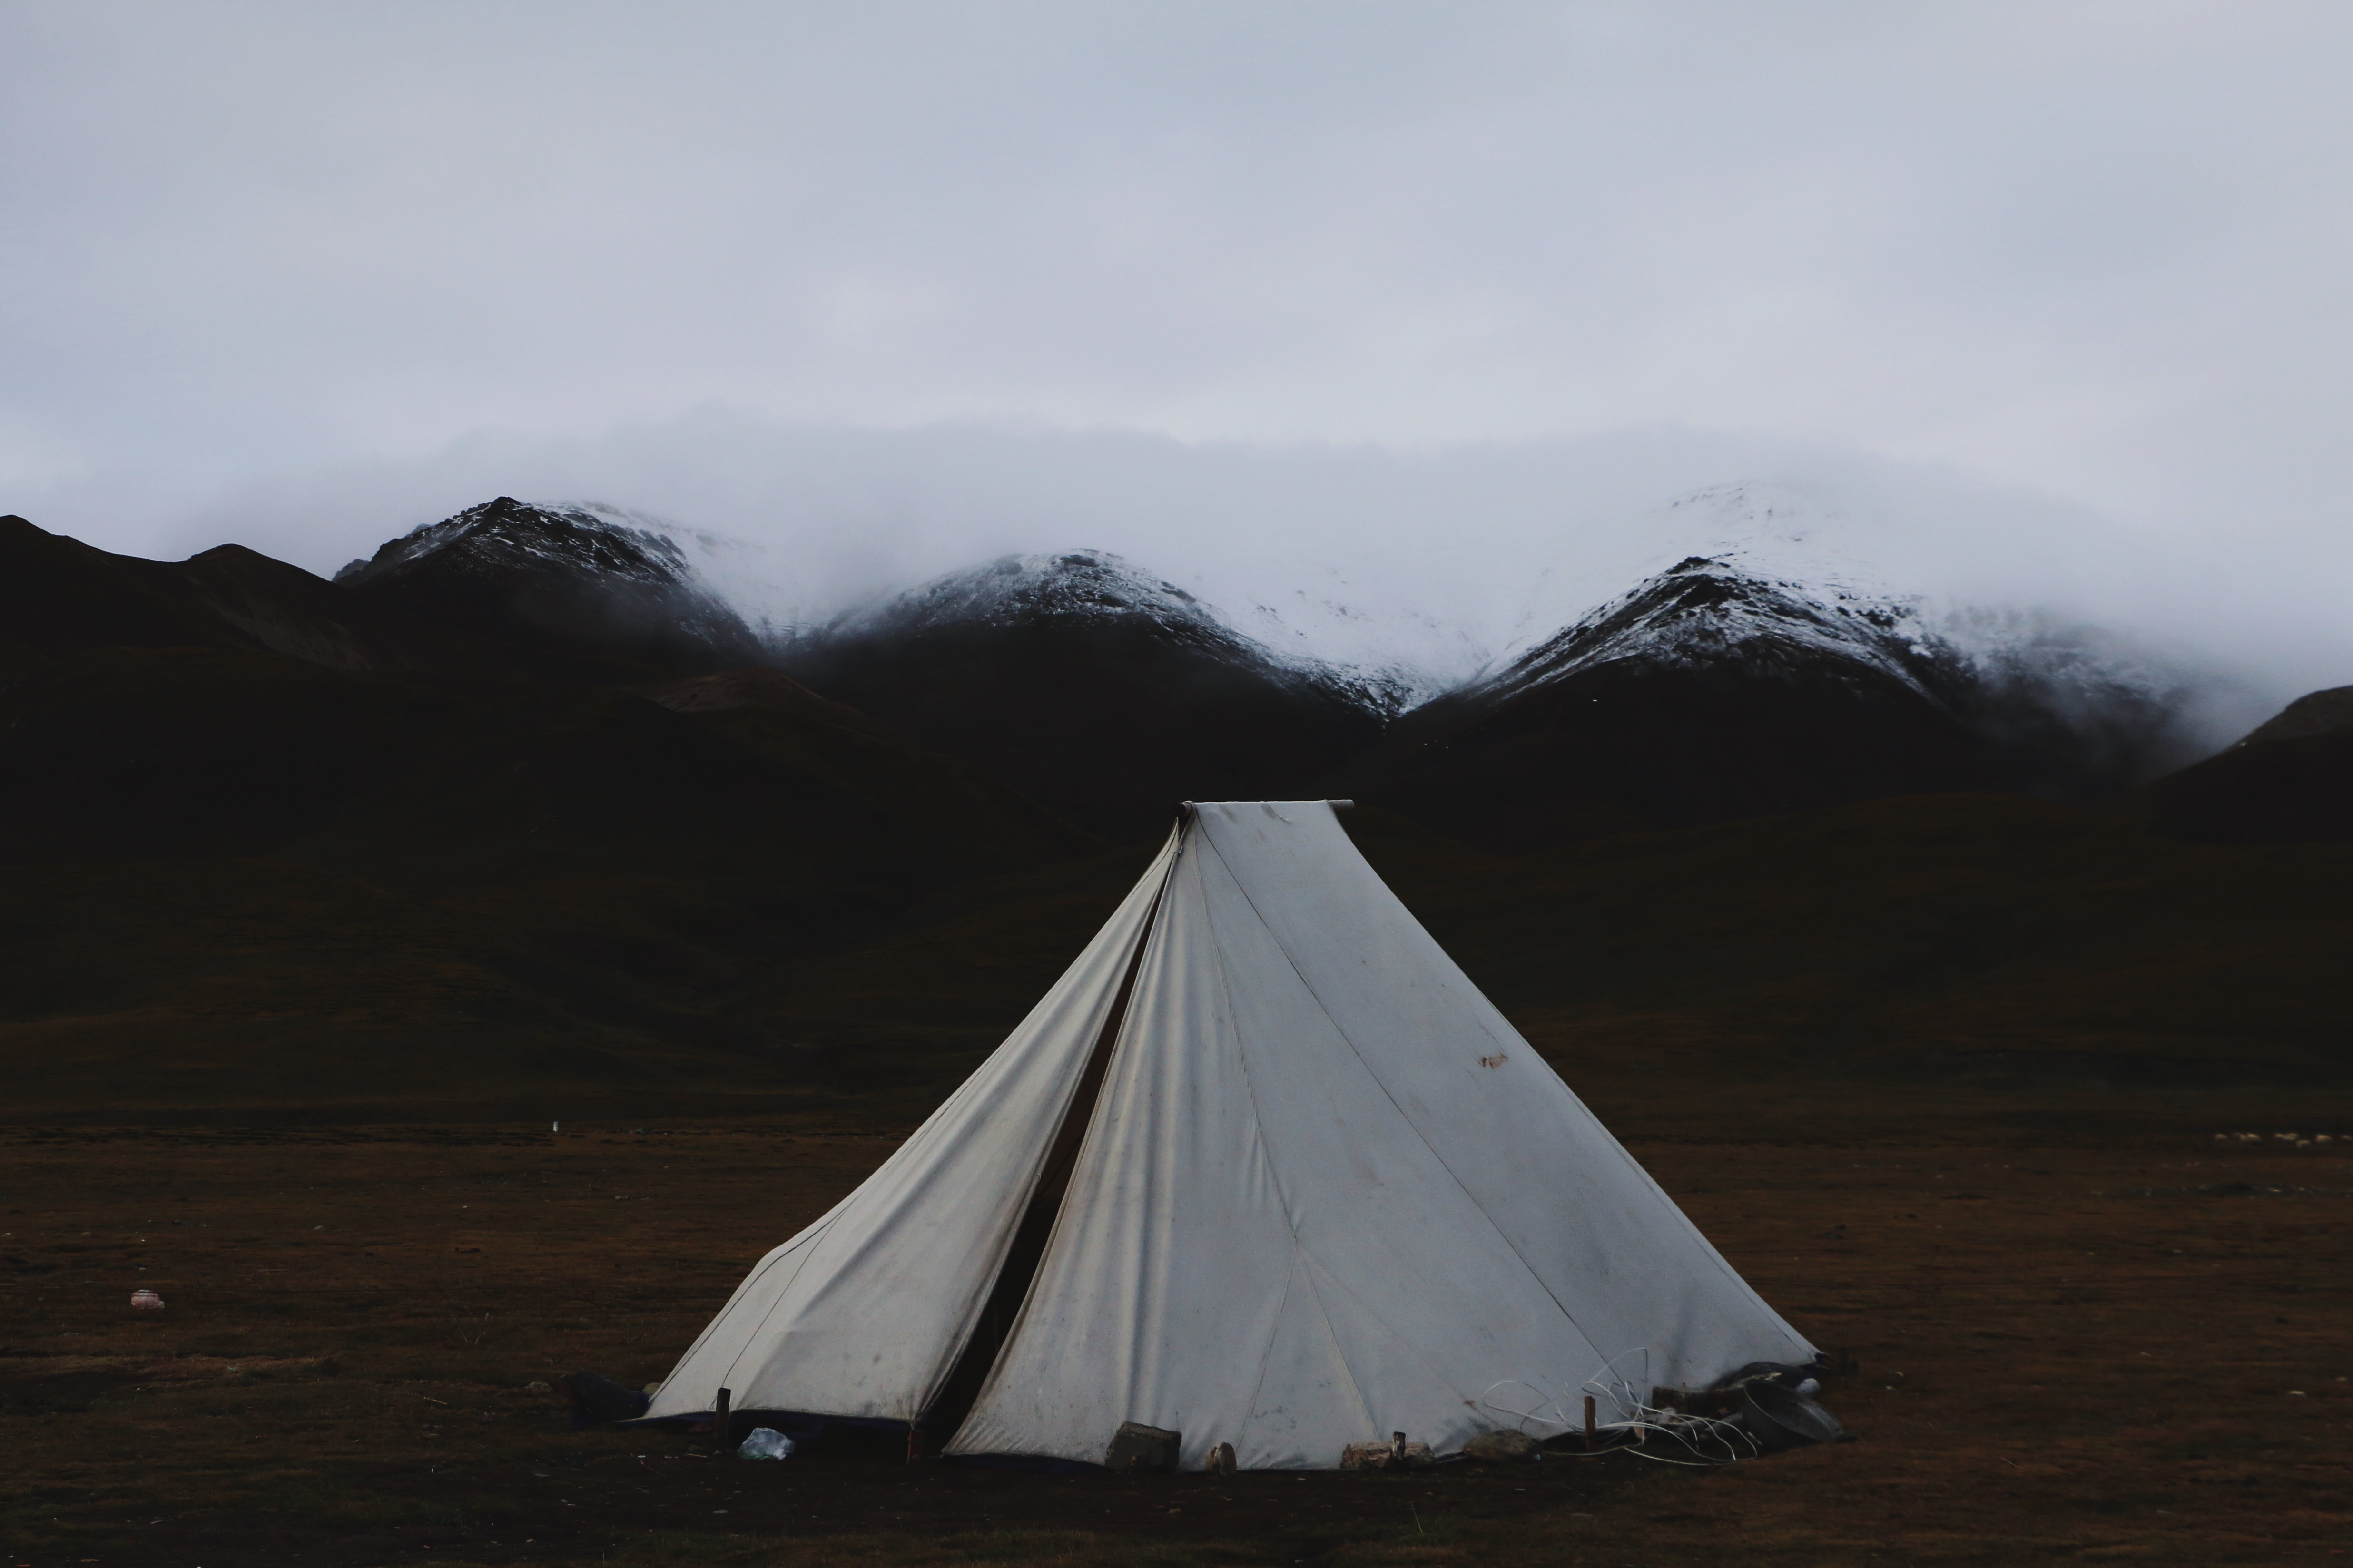 white tipi tent in the middle of the field